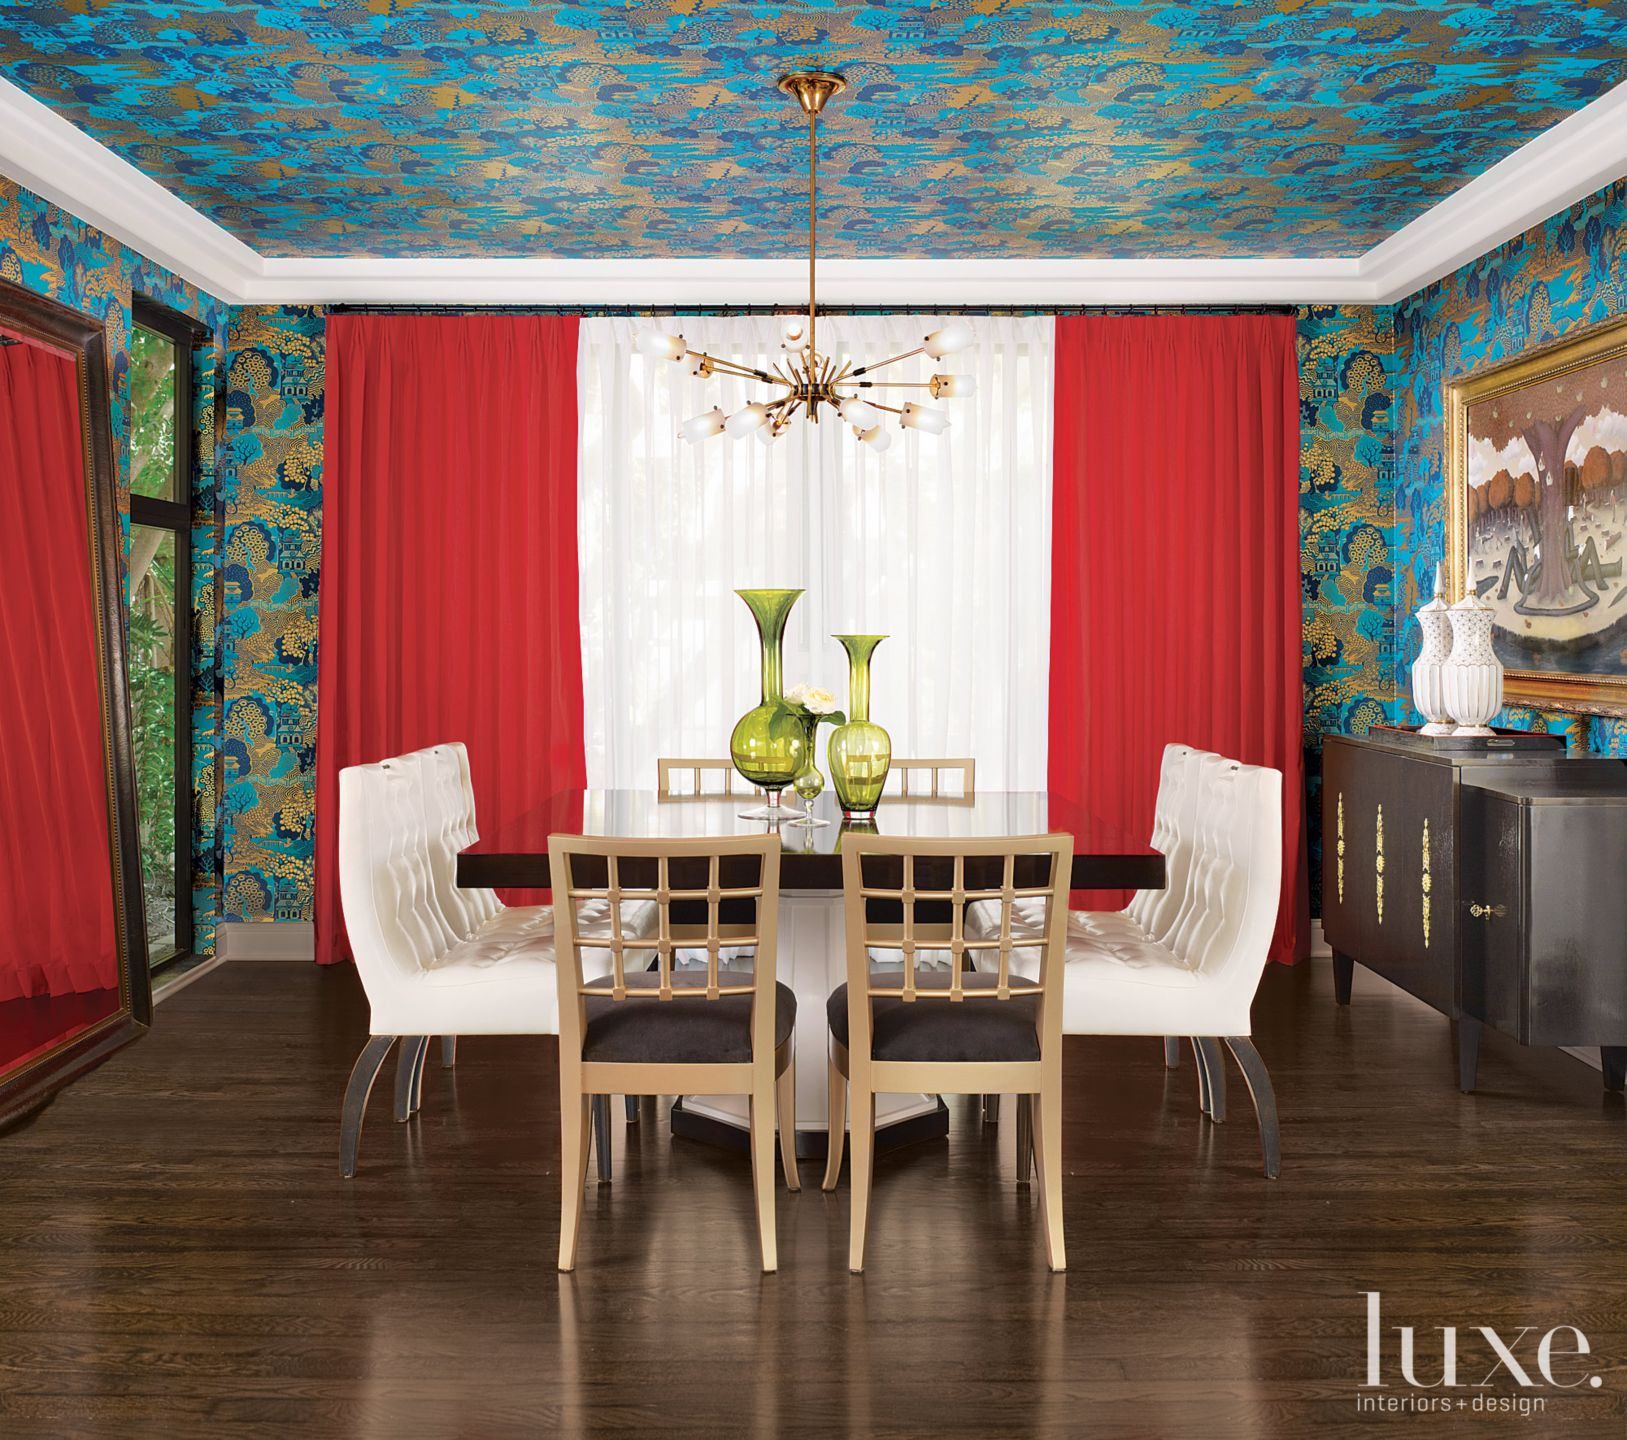 Eclectic Teal Dining Room with Persimmon Drapes